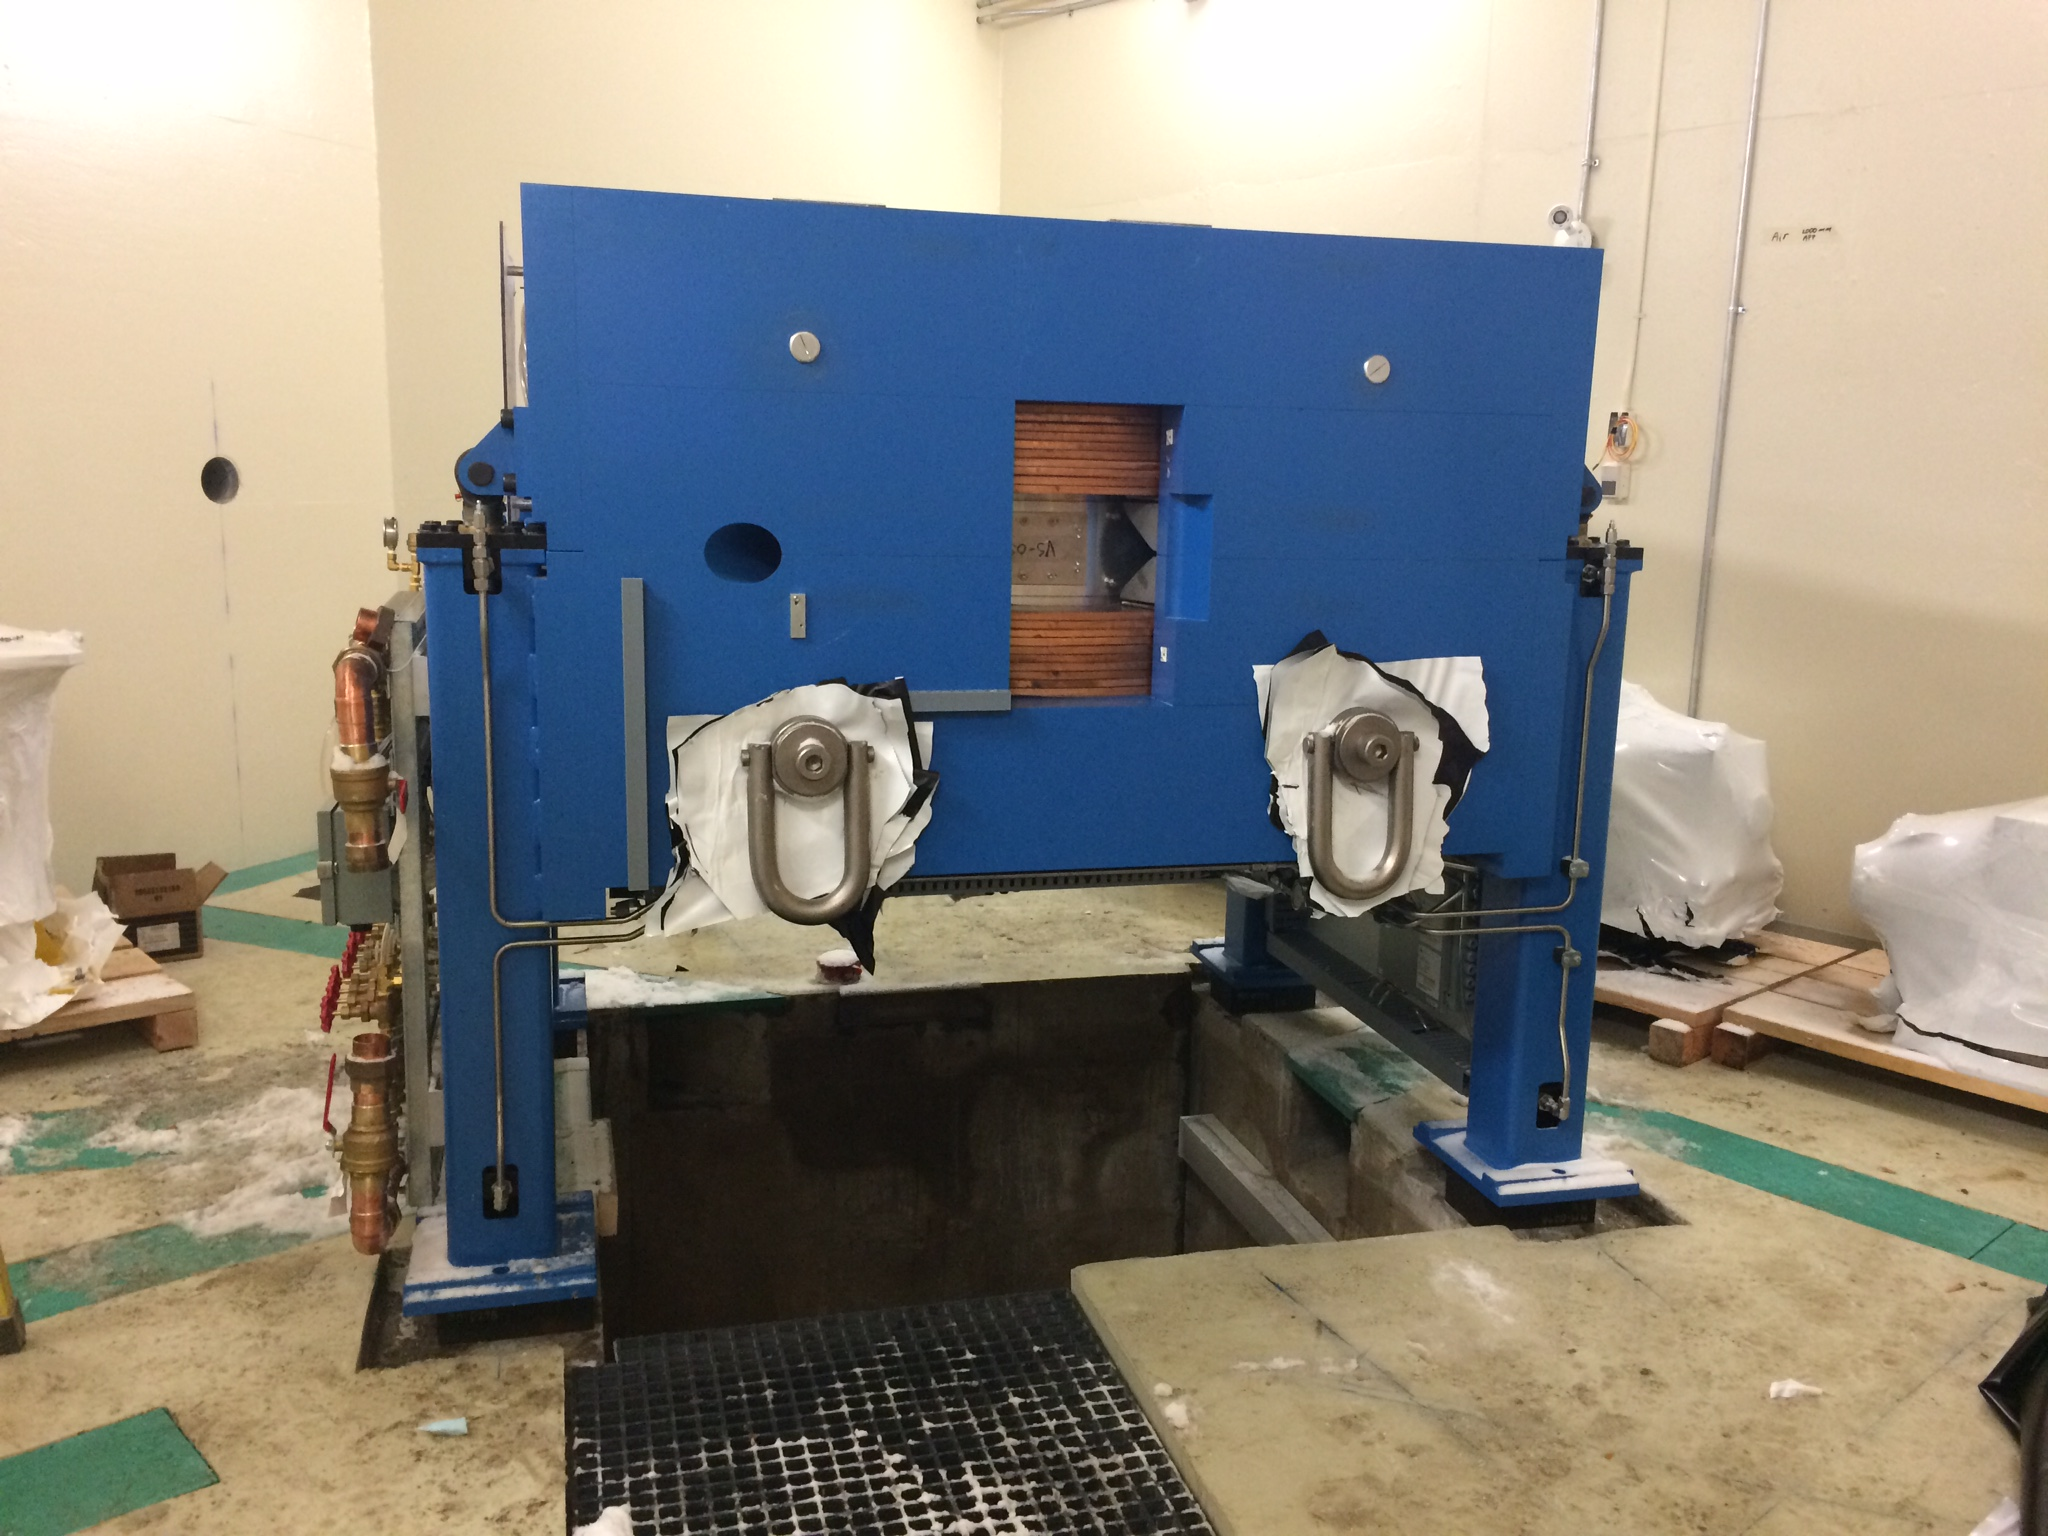 Cyclotron unpacked